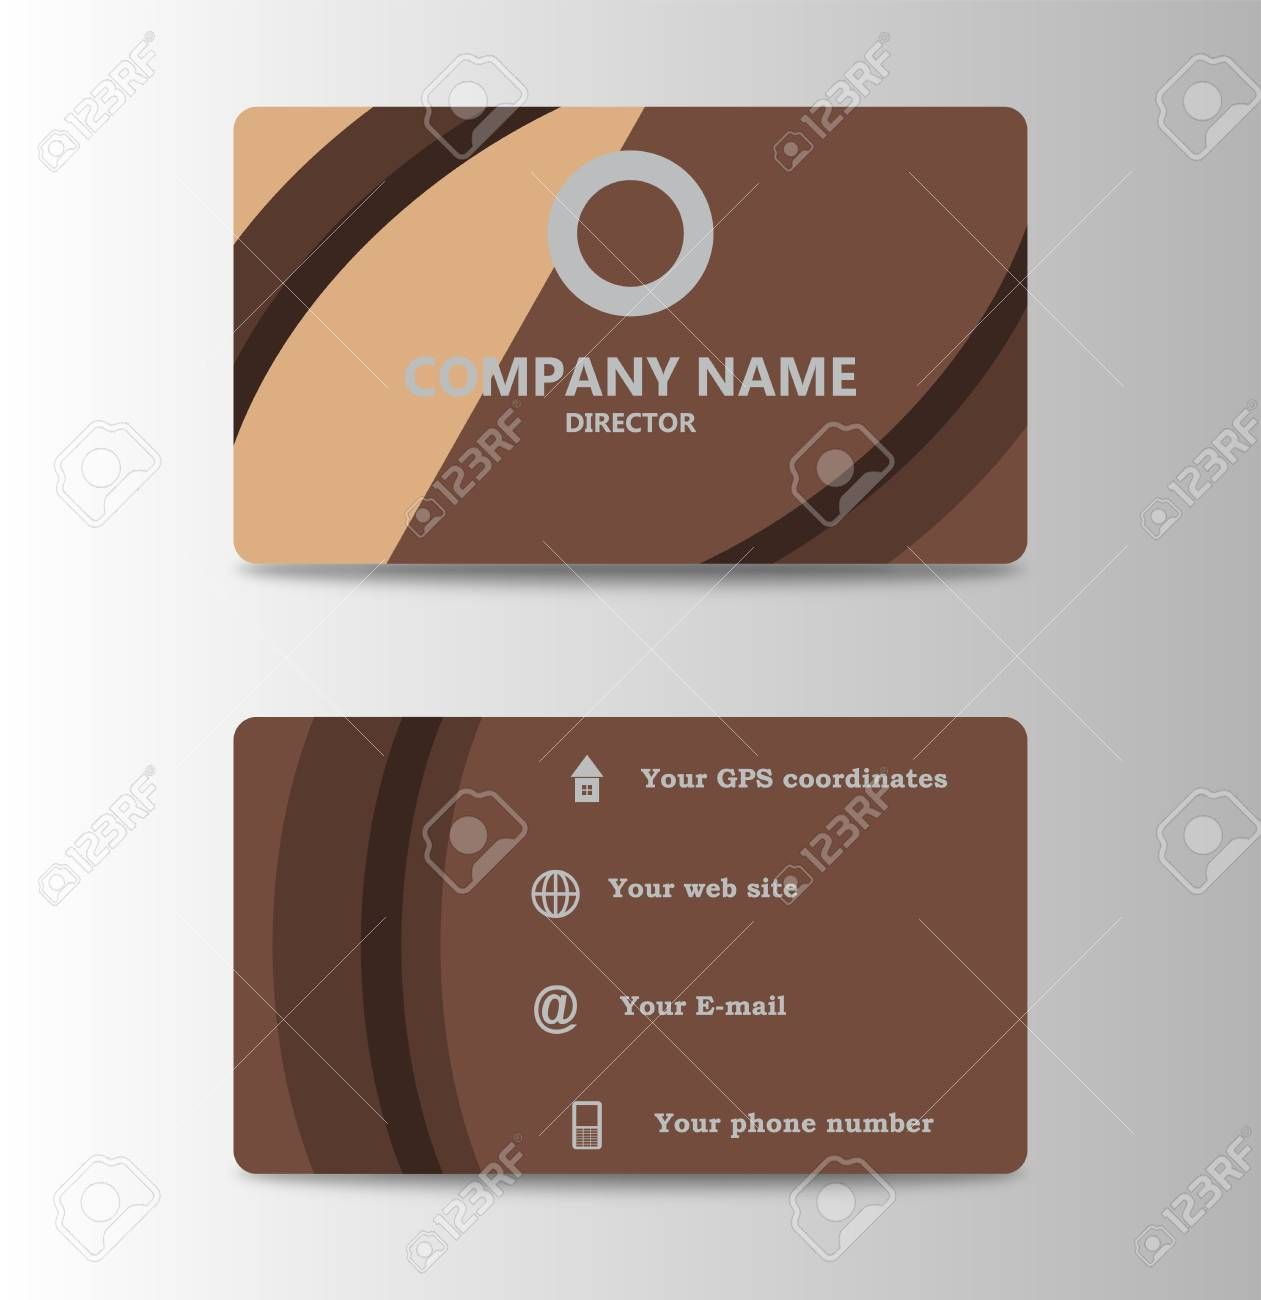 Corporate Id Card Design Template Personal Id Card For Business Intended For Personal Identification Card Template Corporate Id Card Template Card Design